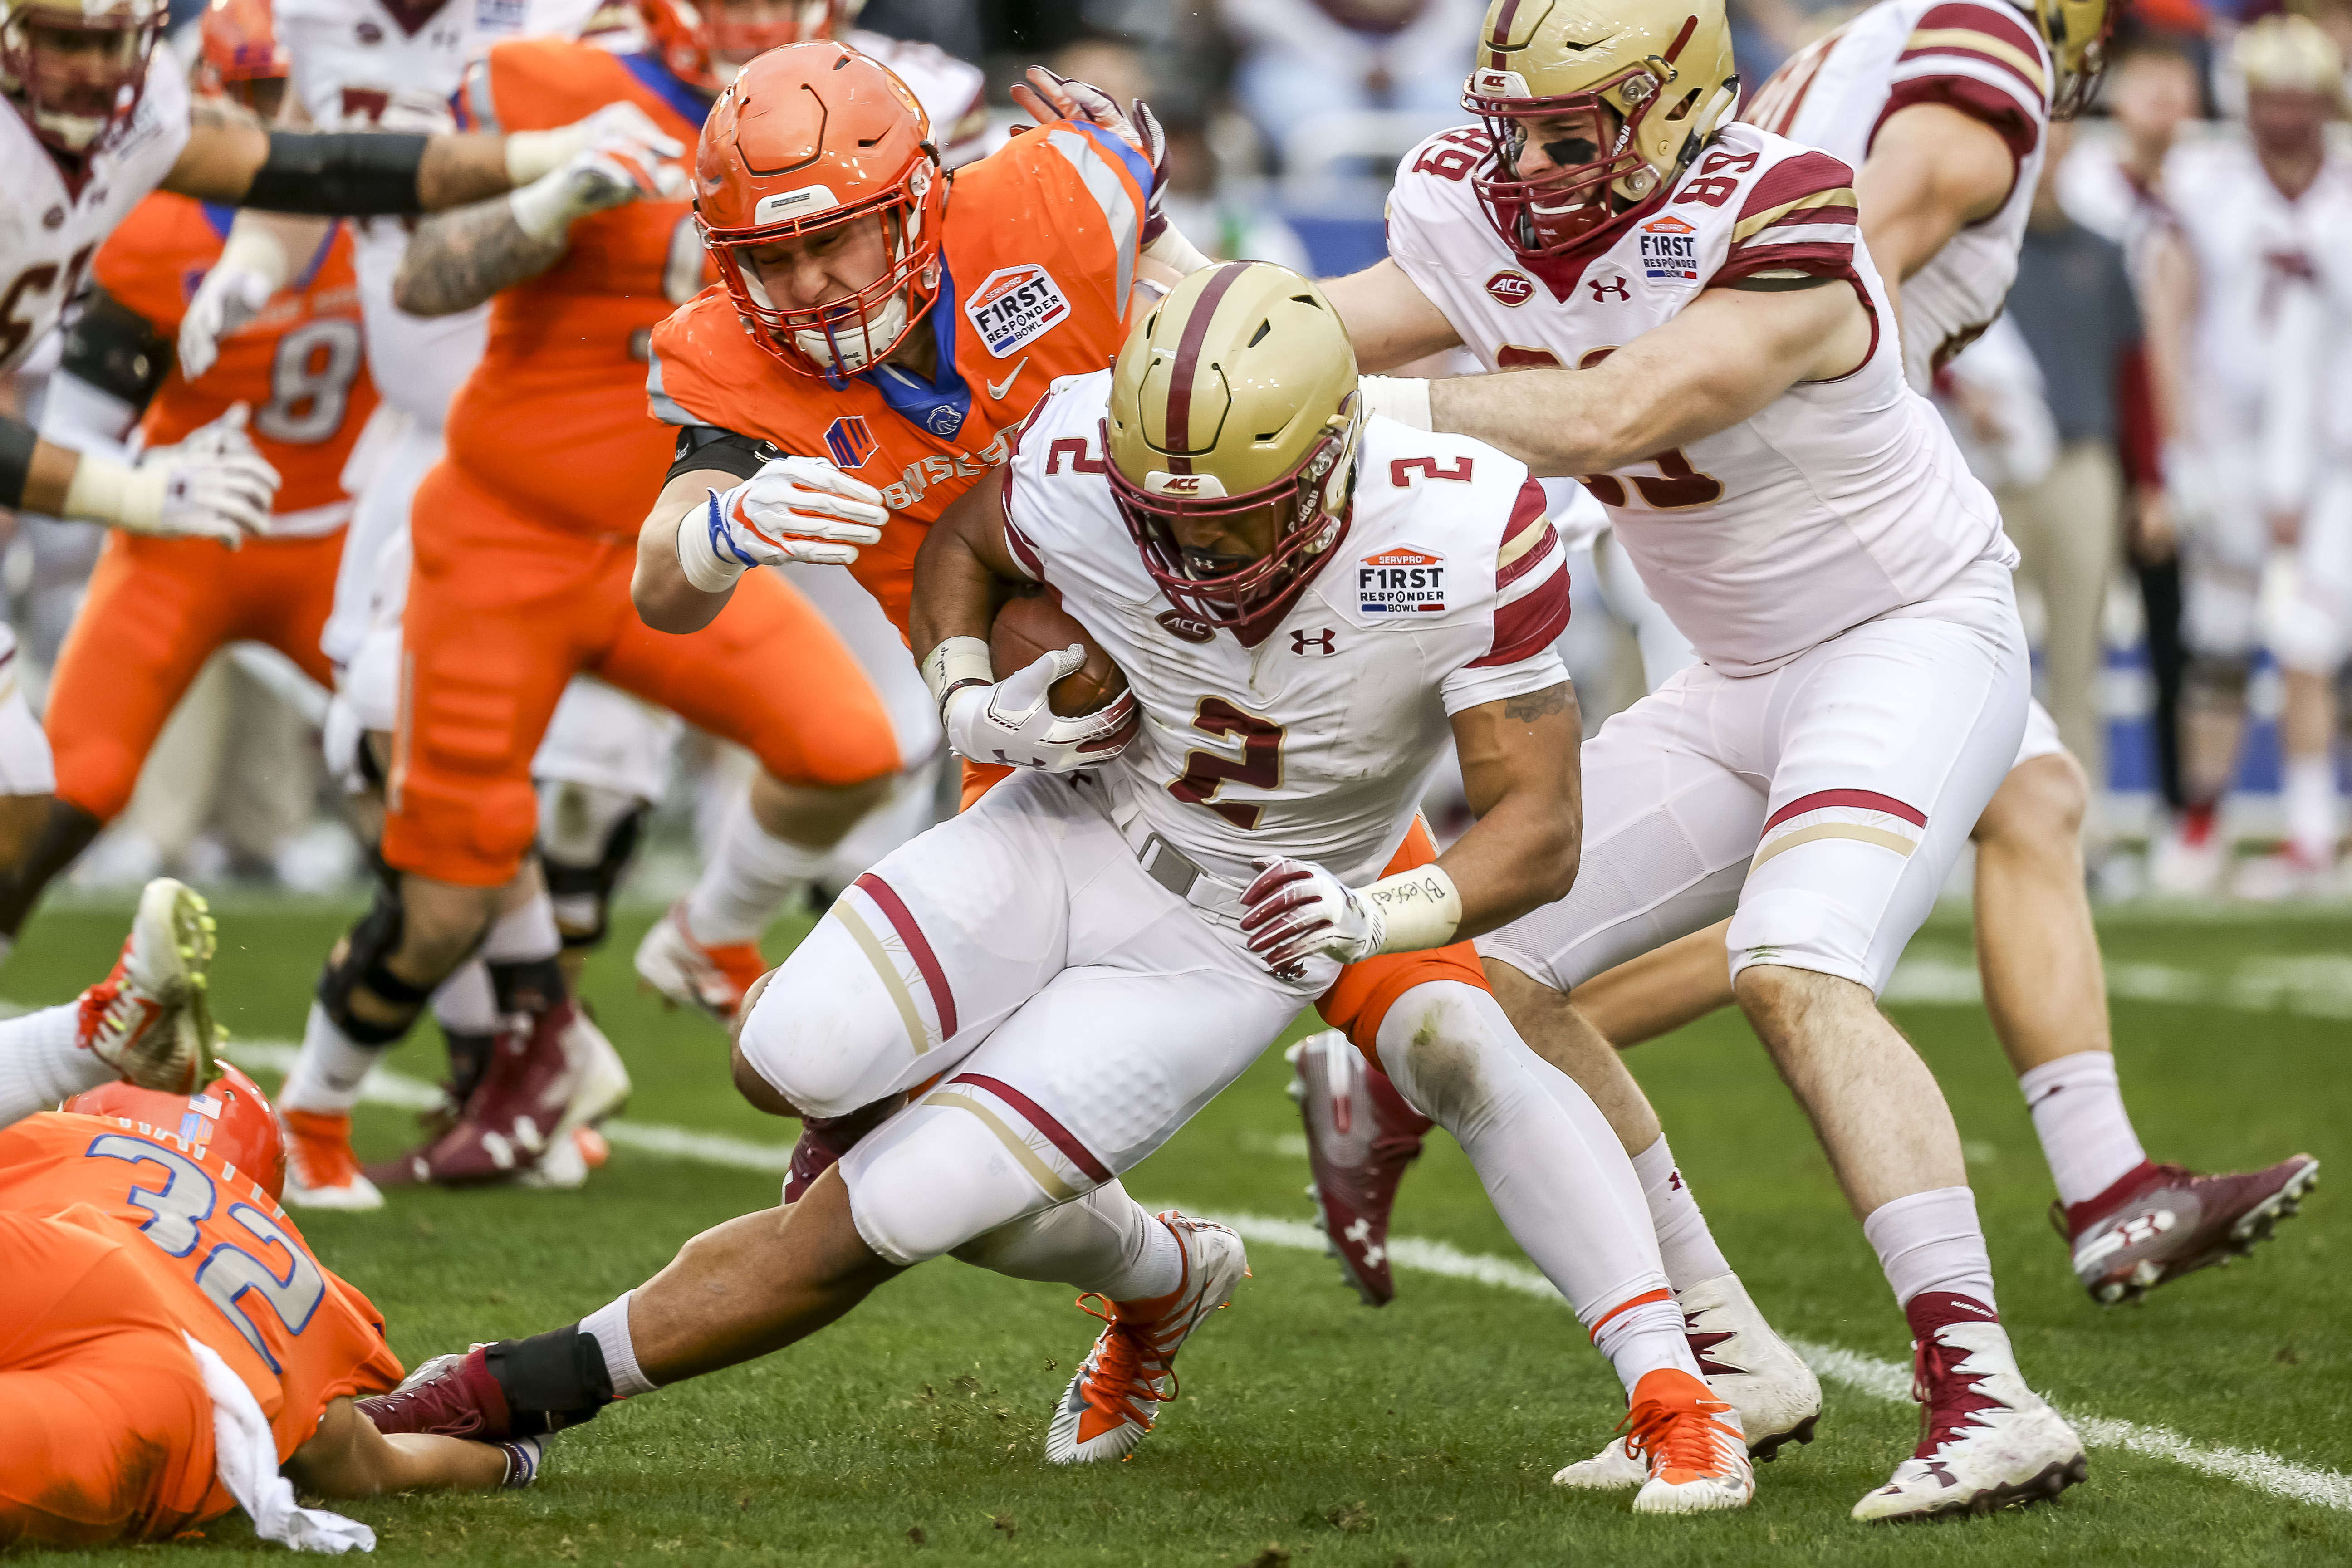 COLLEGE FOOTBALL: DEC 26 First Responder Bowl - Boston College v Boise State